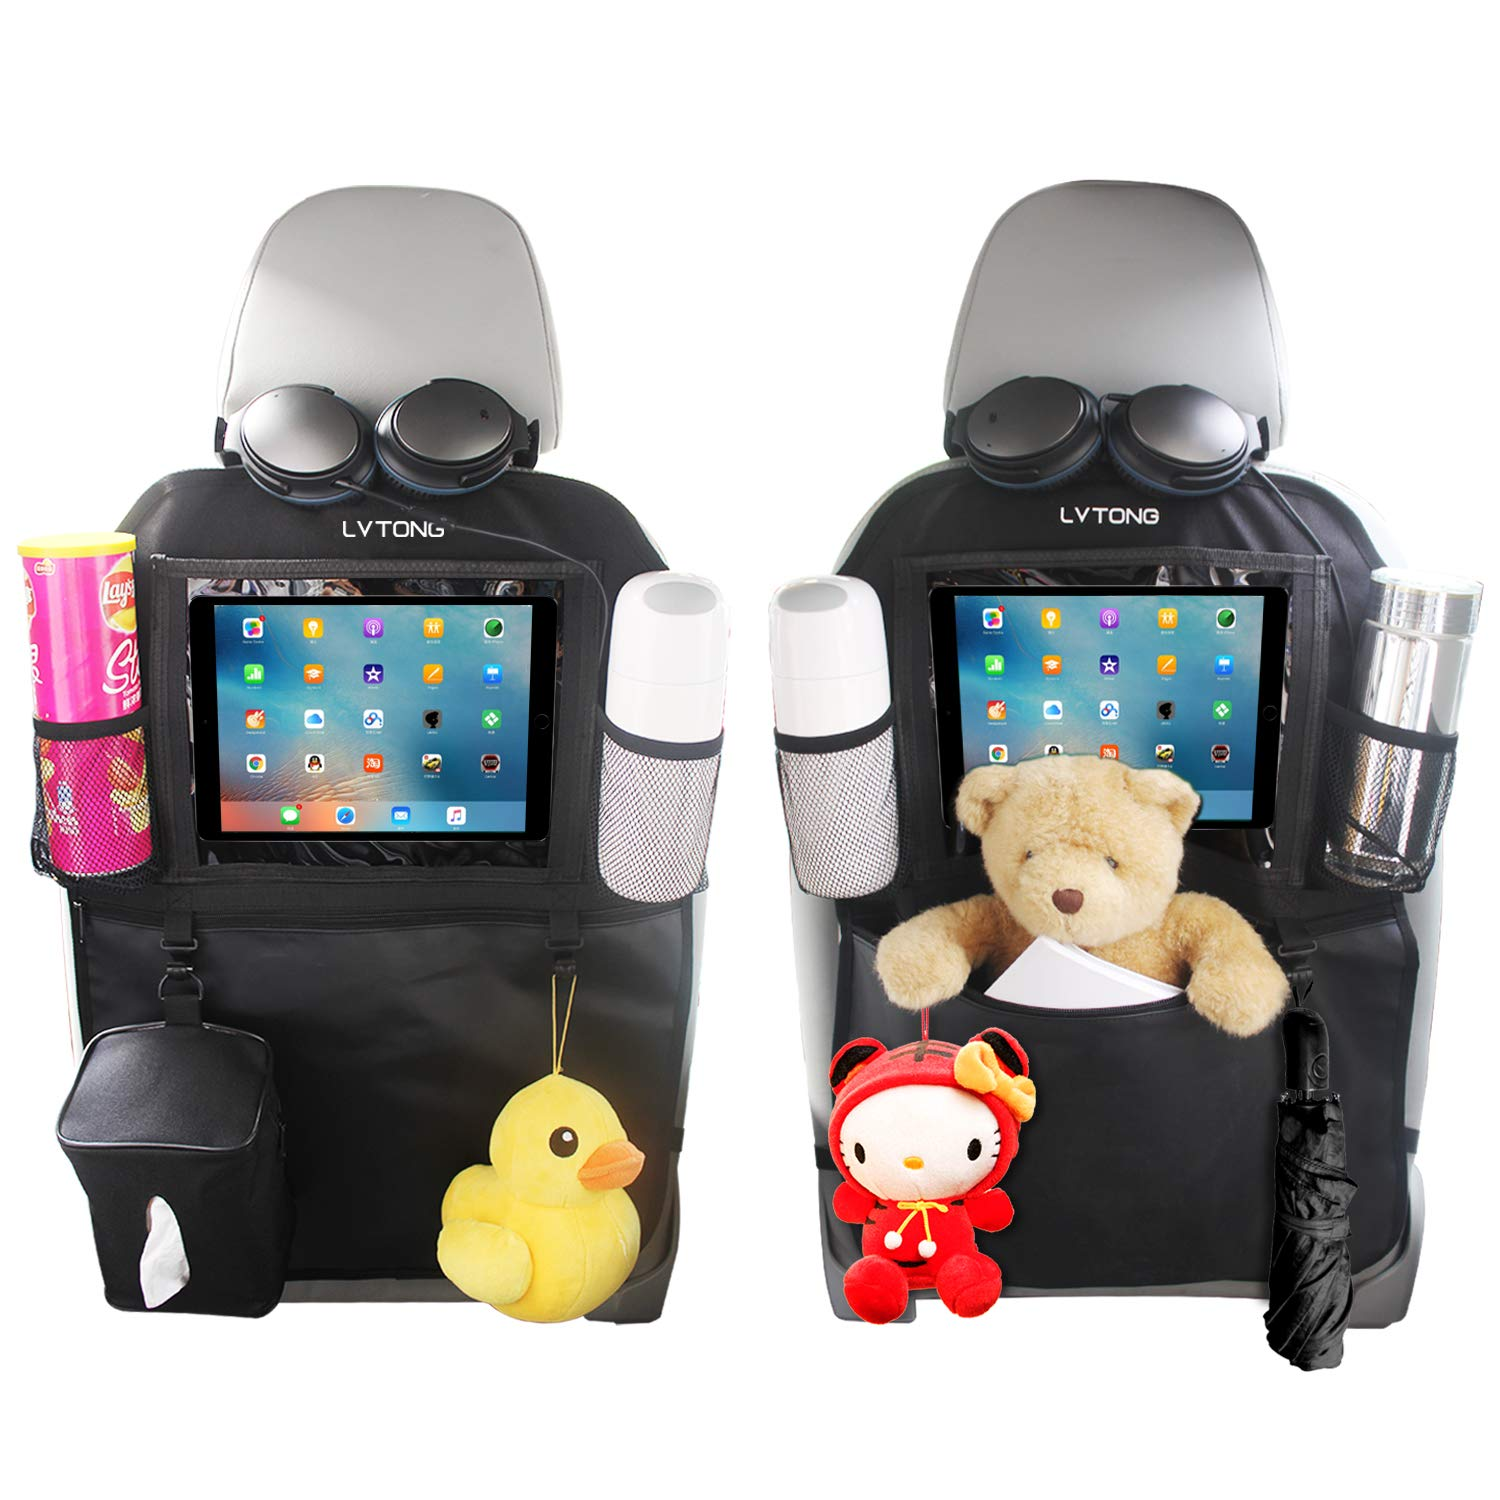 Kick Mats Car Back Seat Organizer 2 Pack Protector Covers XL Storage Bag Pocket with 1 Free Tissue Box 10'' iPad Tablet Holder Car Organizers for Kids Travel Guandong 001